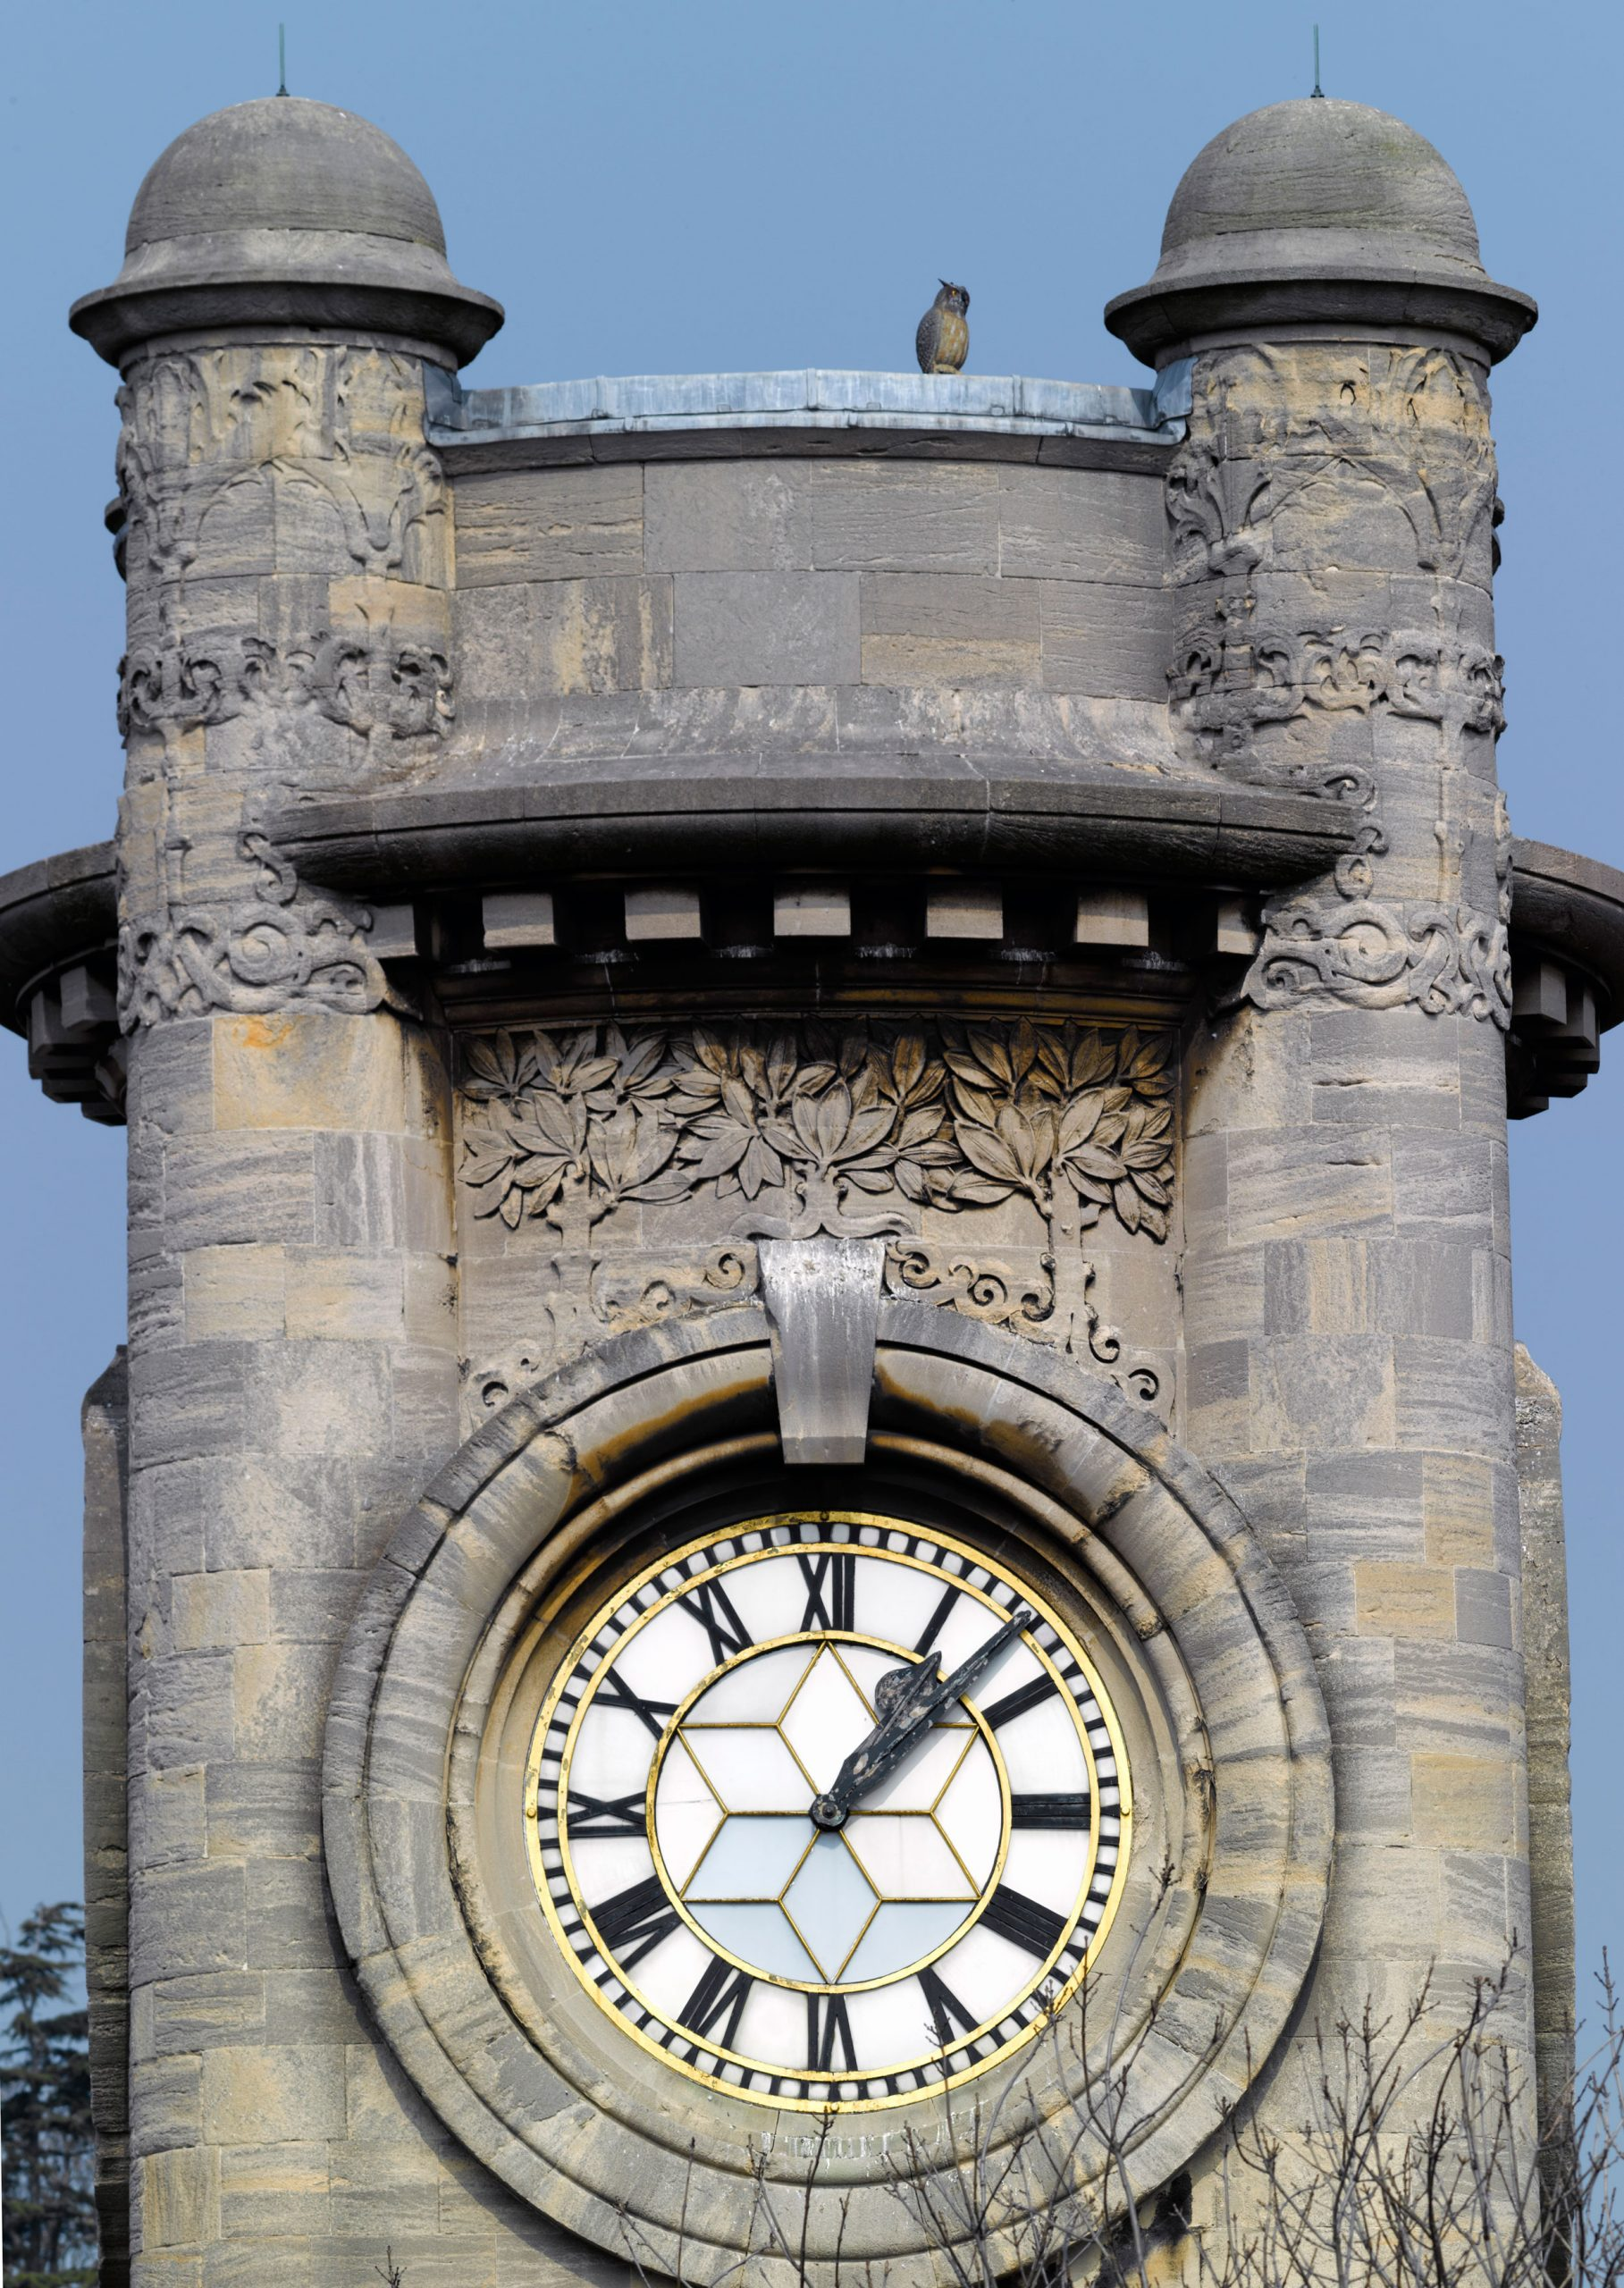 A close up of the top of the Horniman clocktower, with trees growing around the face